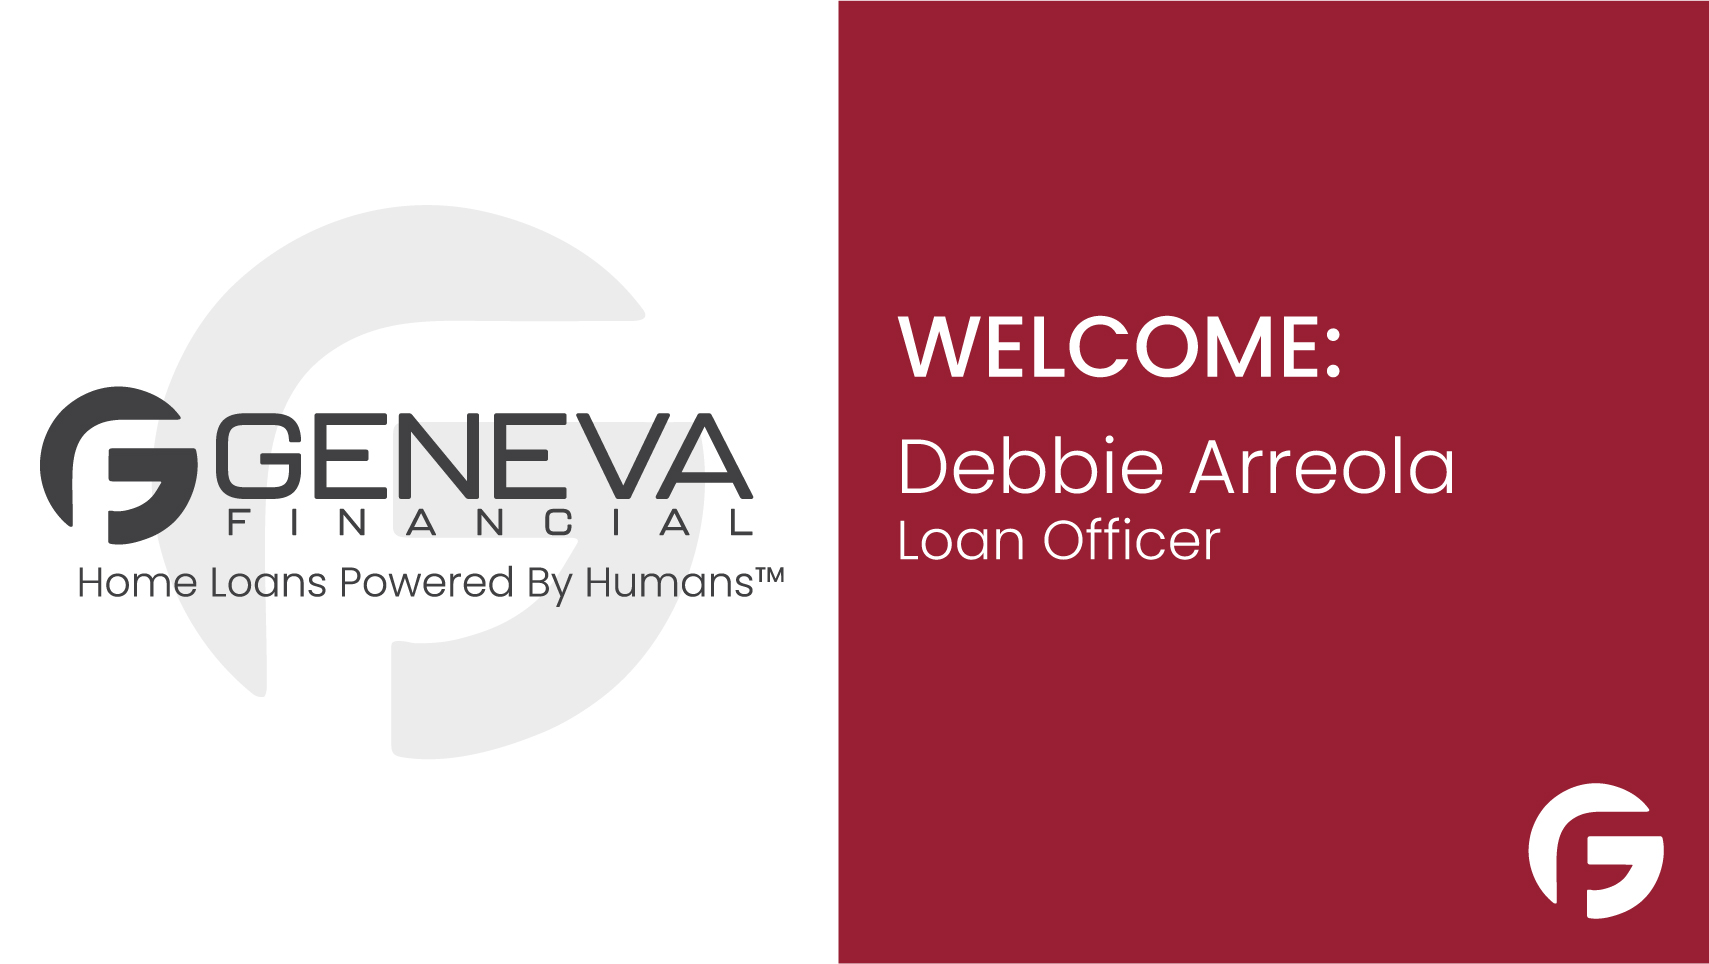 Debbie Arreola, Loan Officer, serving the state of Texas